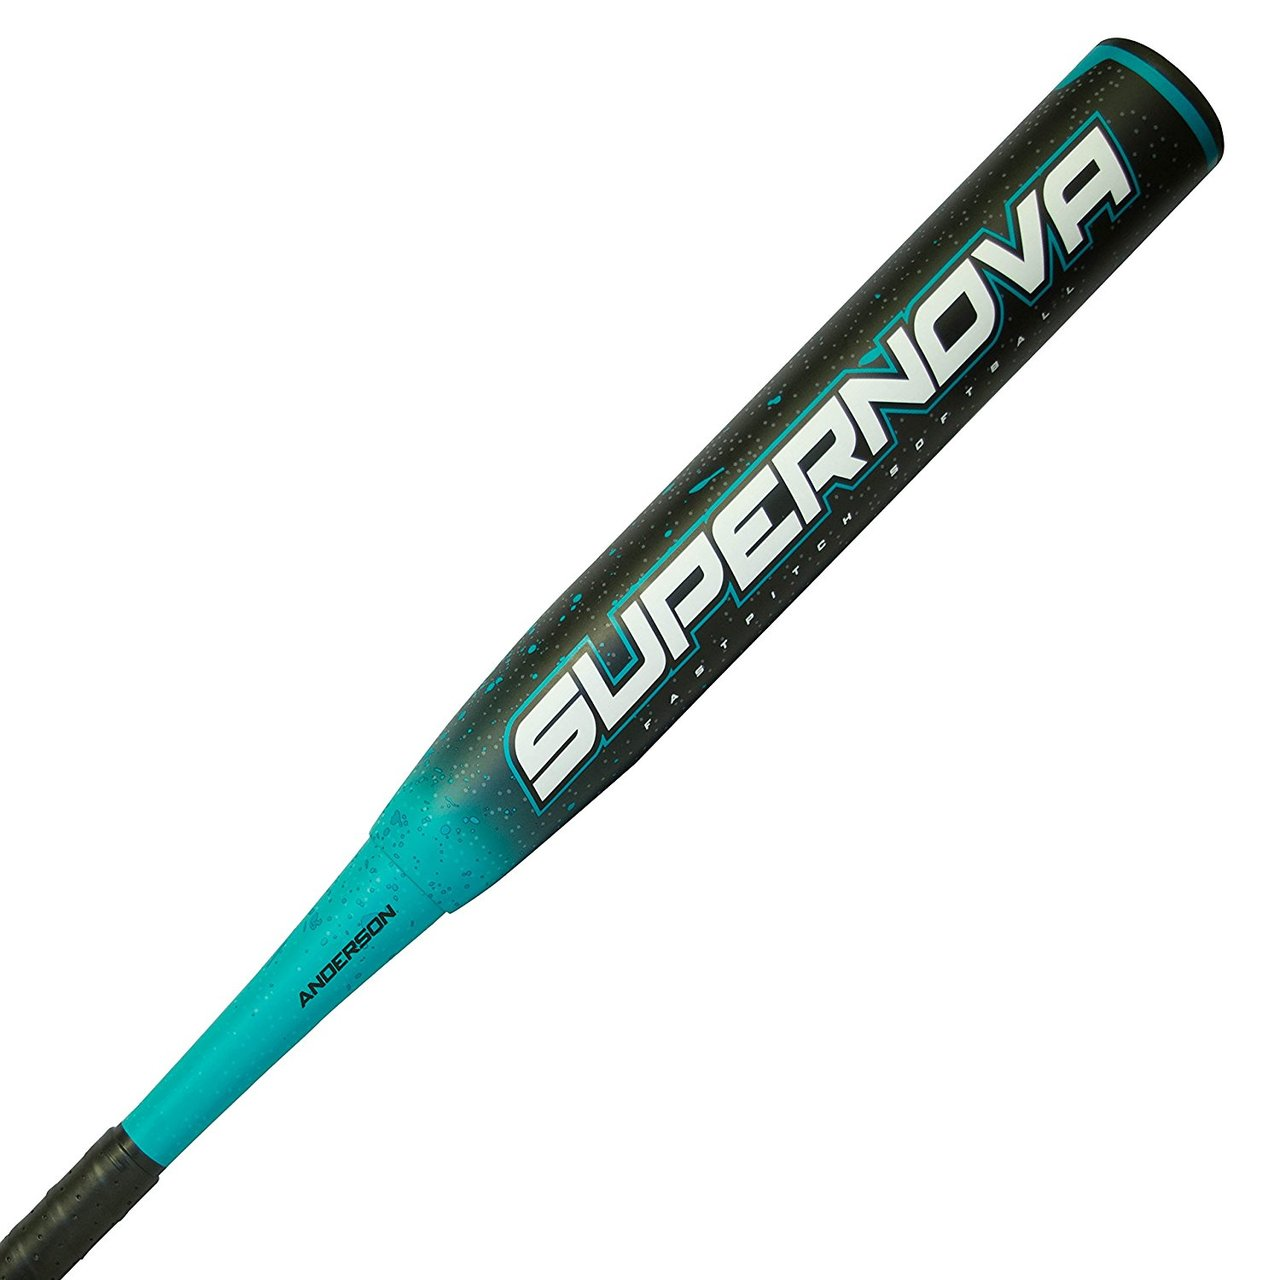 anderson-supernova-10-fast-pitch-softball-bat-33-inch-23-oz 017035-3323 Anderson 874147008461 2.25 Barrel -10 Drop Weight Ultra balanced for more speed and